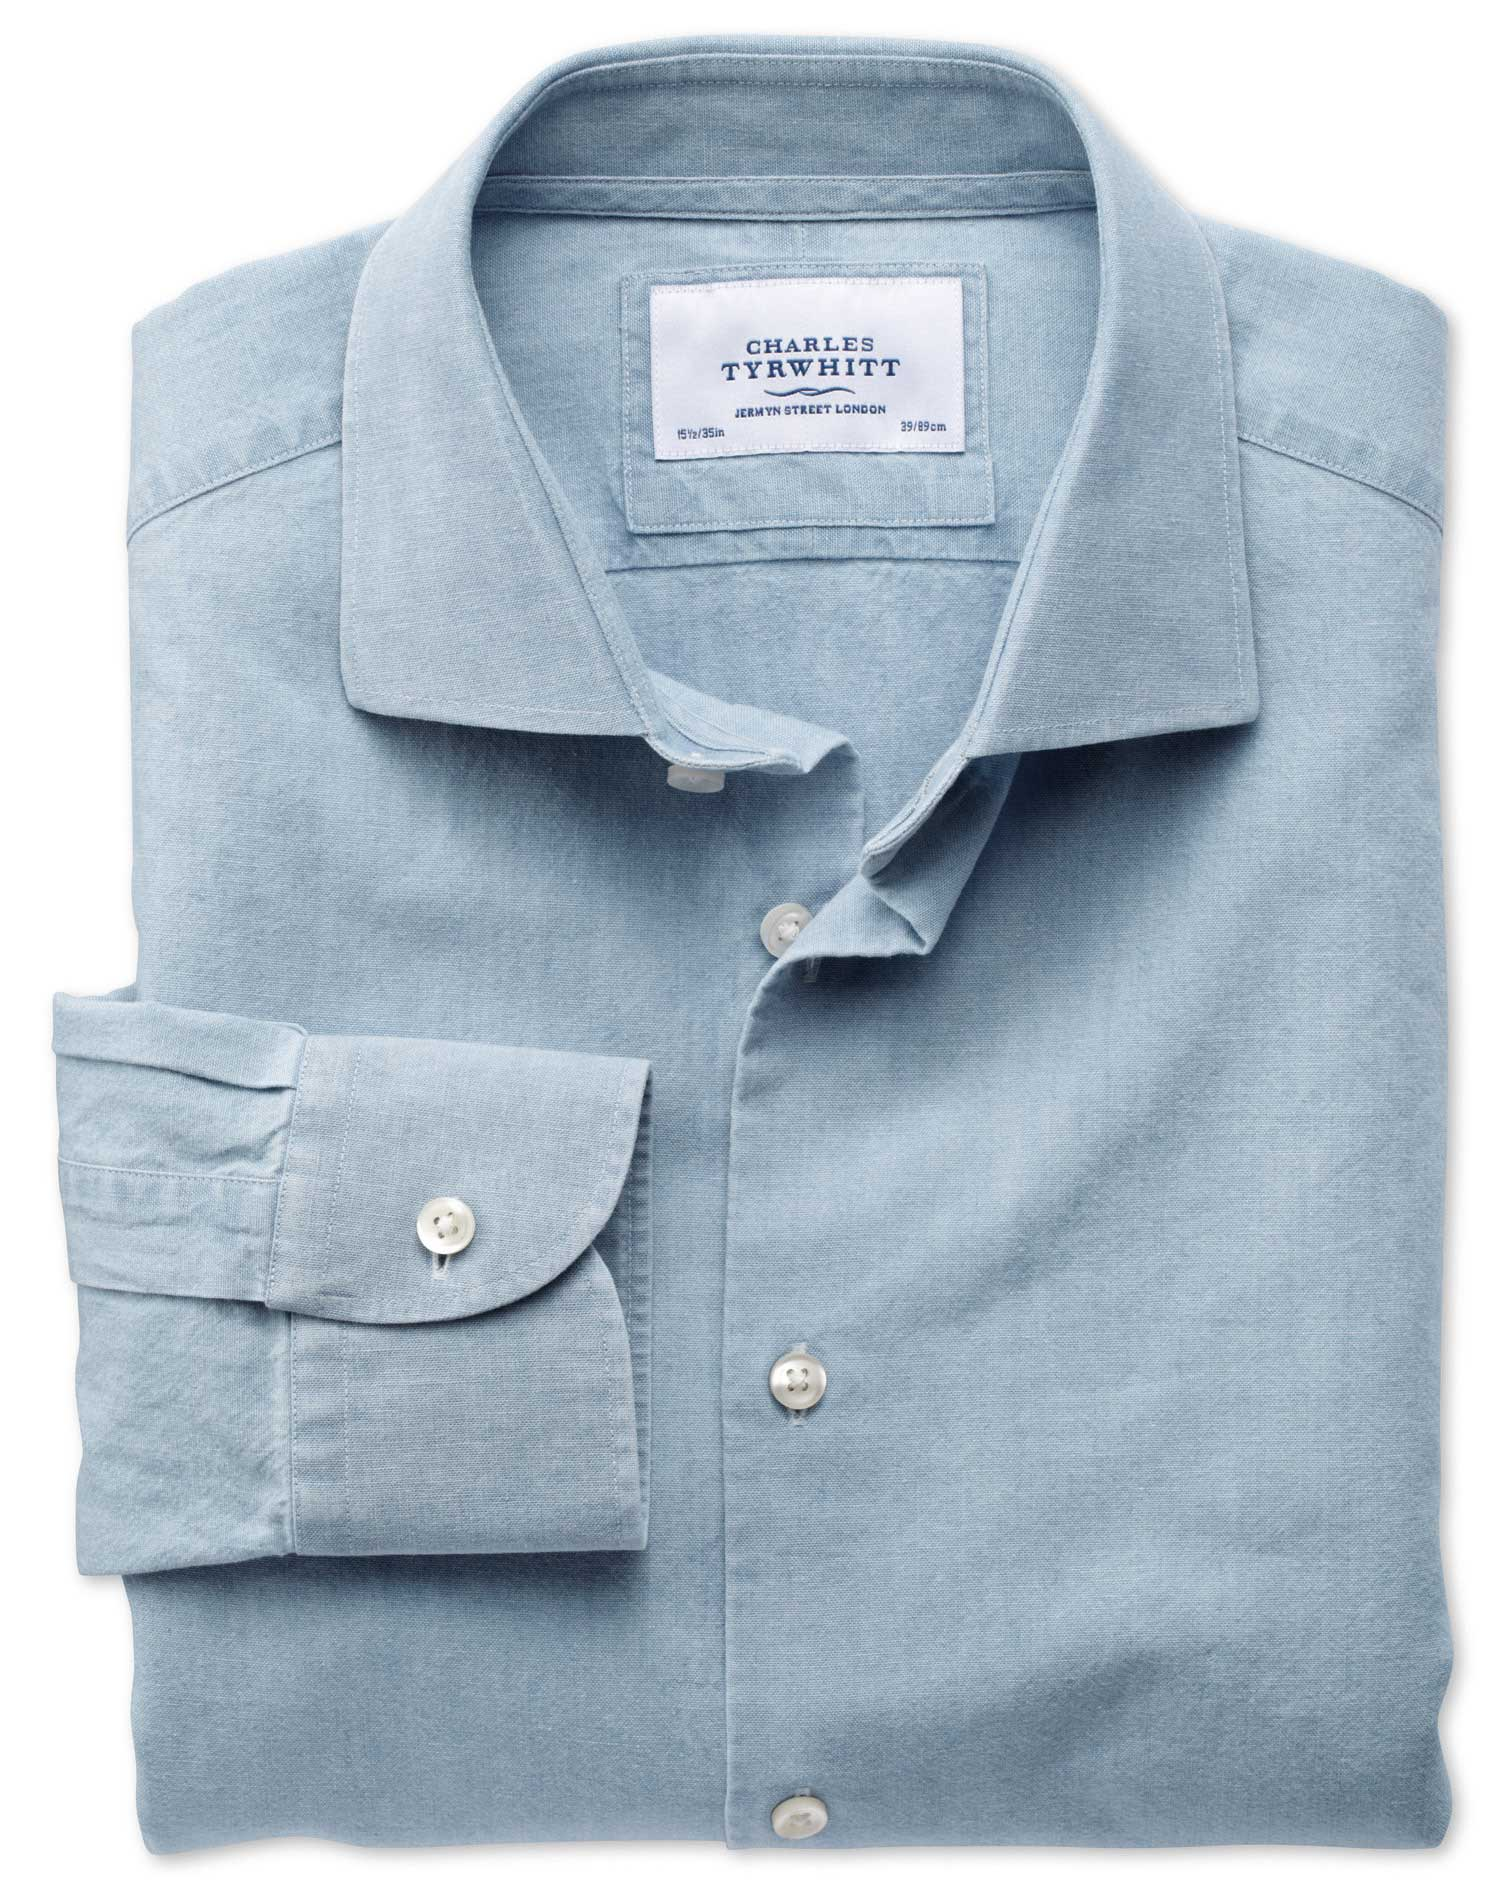 Classic Fit Semi-Cutaway Collar Business Casual Chambray Denim Blue Cotton Formal Shirt Single Cuff